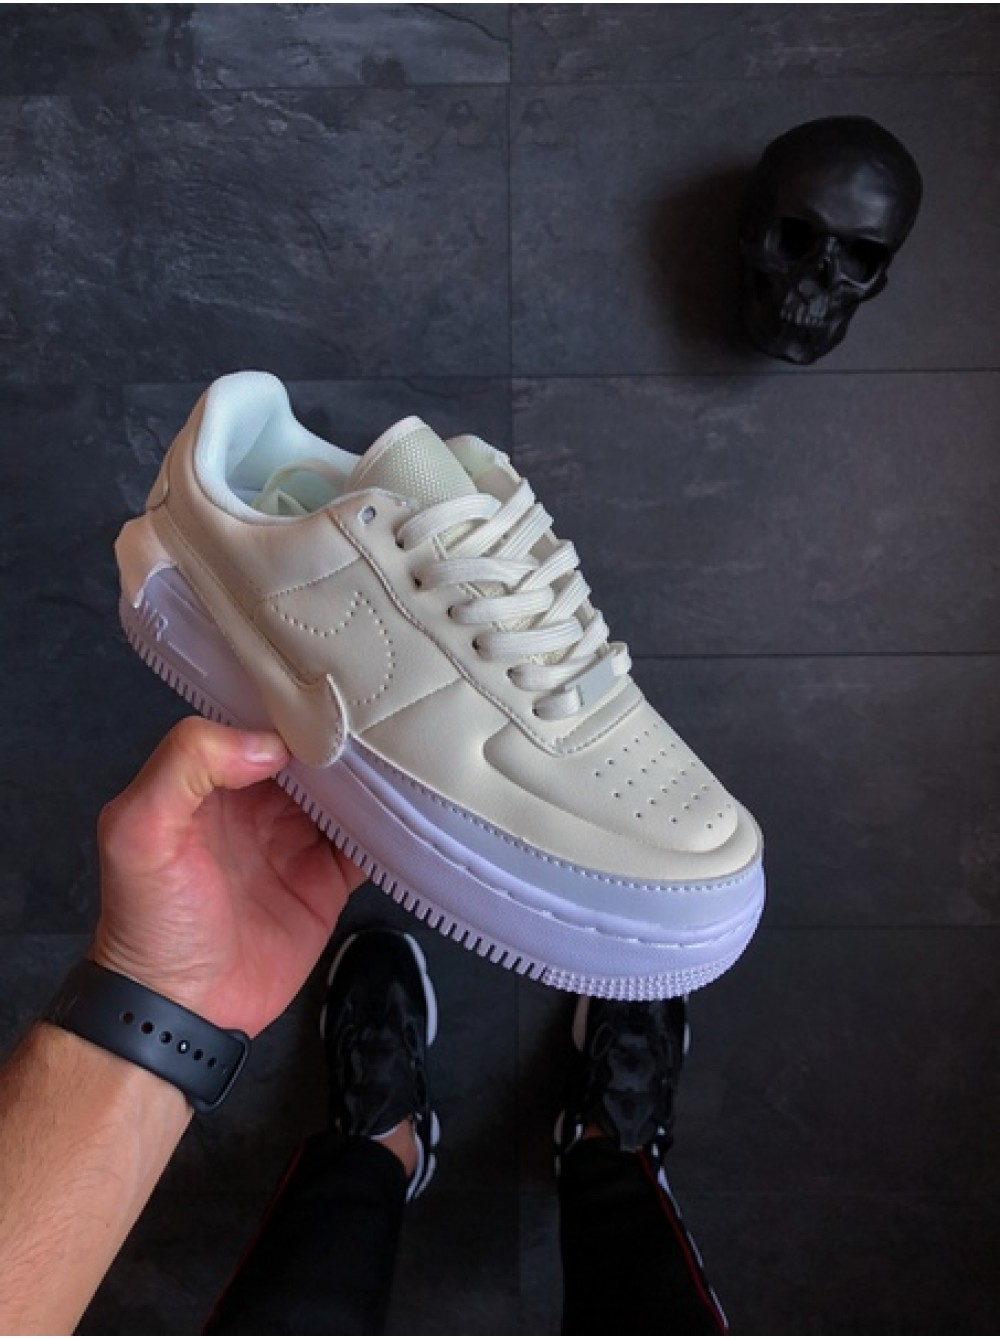 7615f1c4 Кроссовки Nike x Off-White Air Force 1 Low Ice